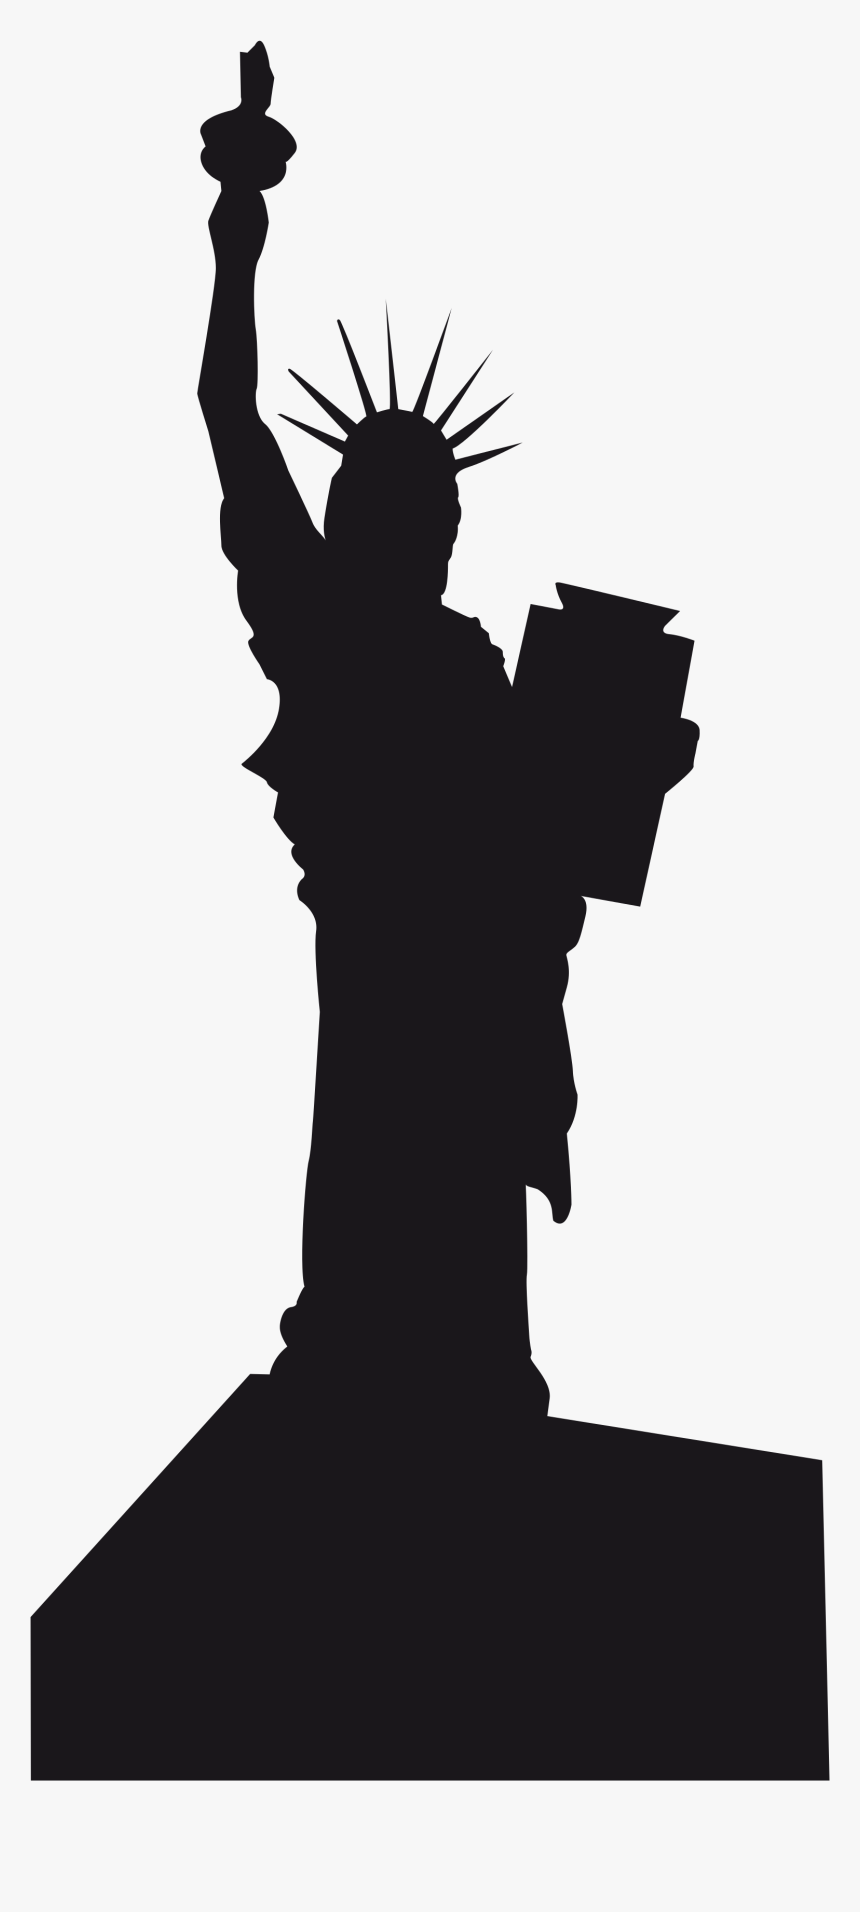 Usa Clipart Statue Liberty Statue Of Liberty Art Simple Hd Png Download Transparent Png Image Pngitem Statue of liberty clipart free download! usa clipart statue liberty statue of